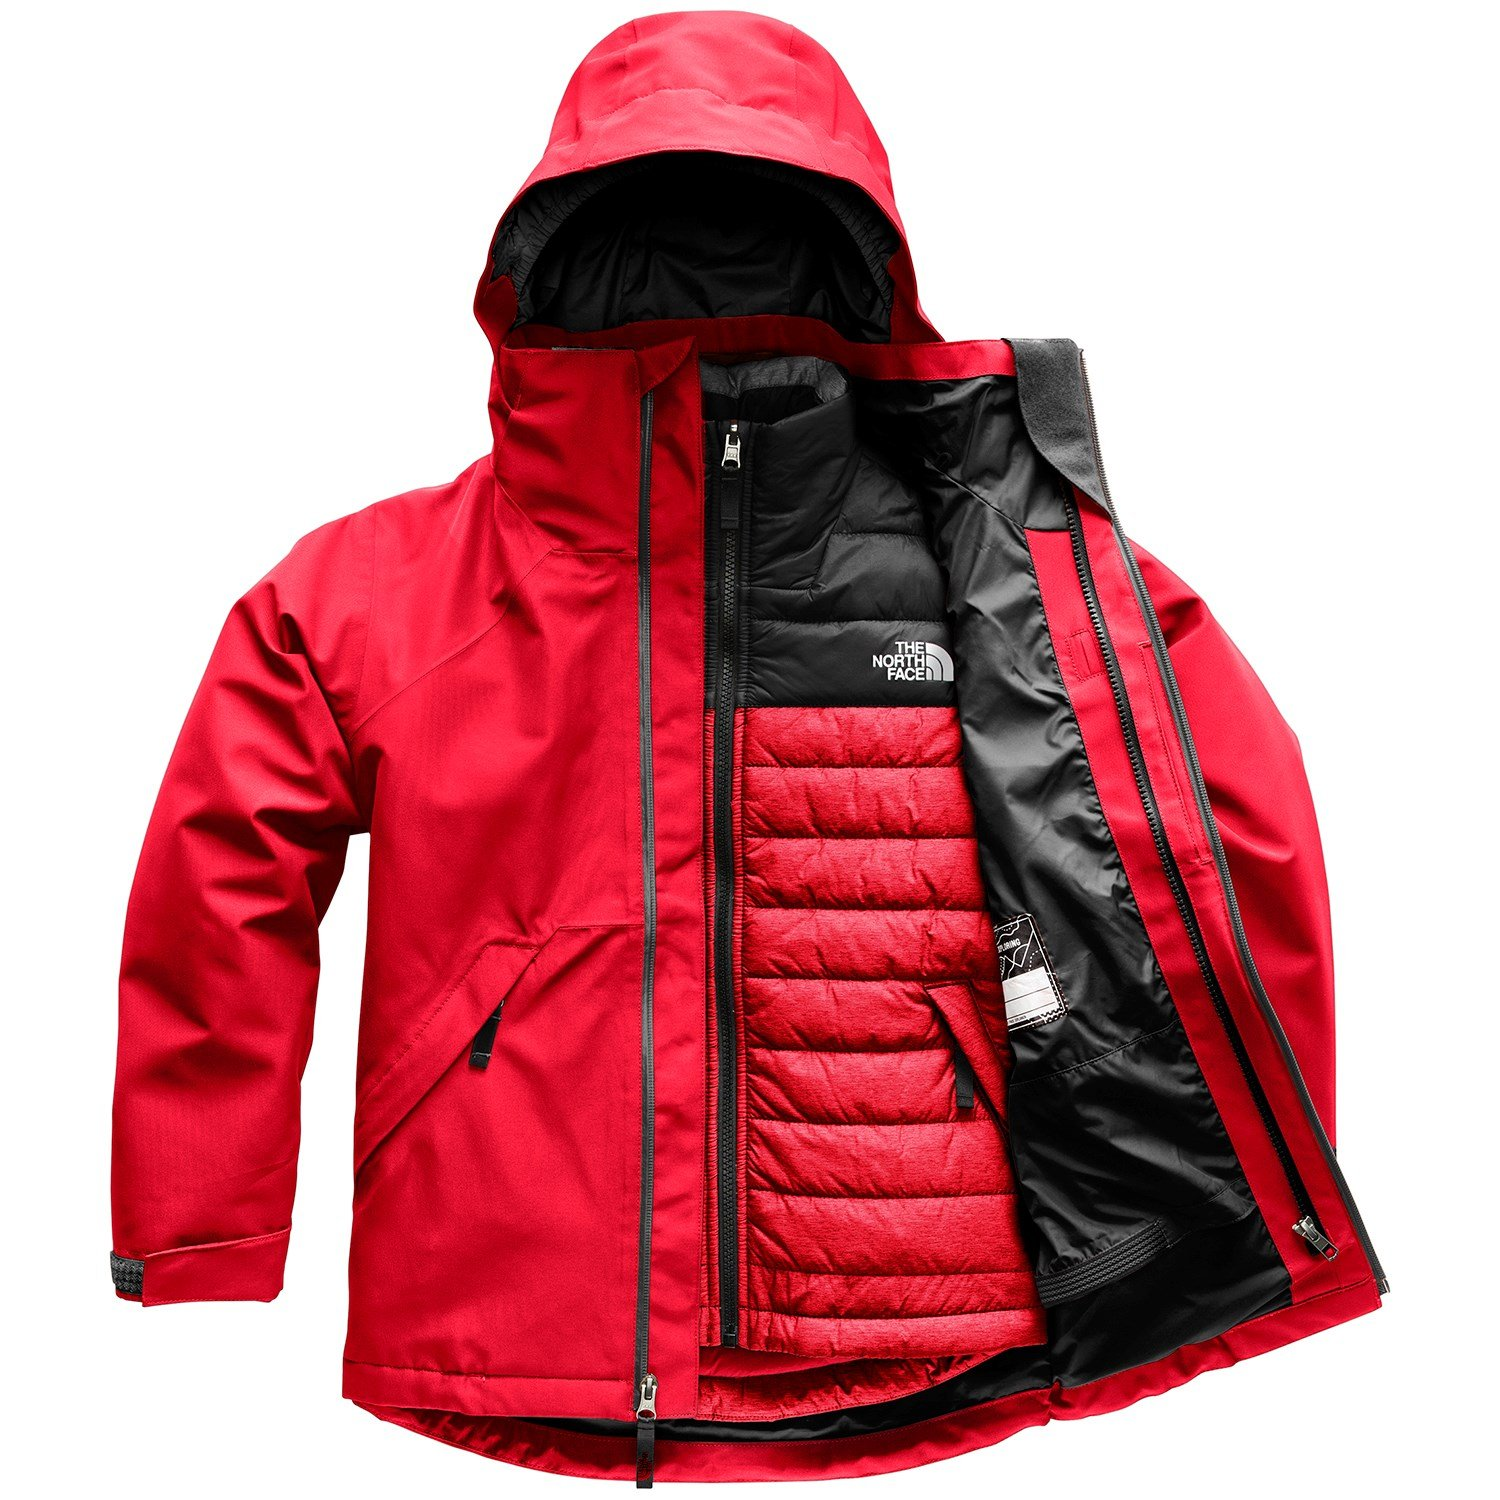 a6ccc5b5f The North Face Fresh Tracks GORE-TEX Triclimate Jacket - Boys'